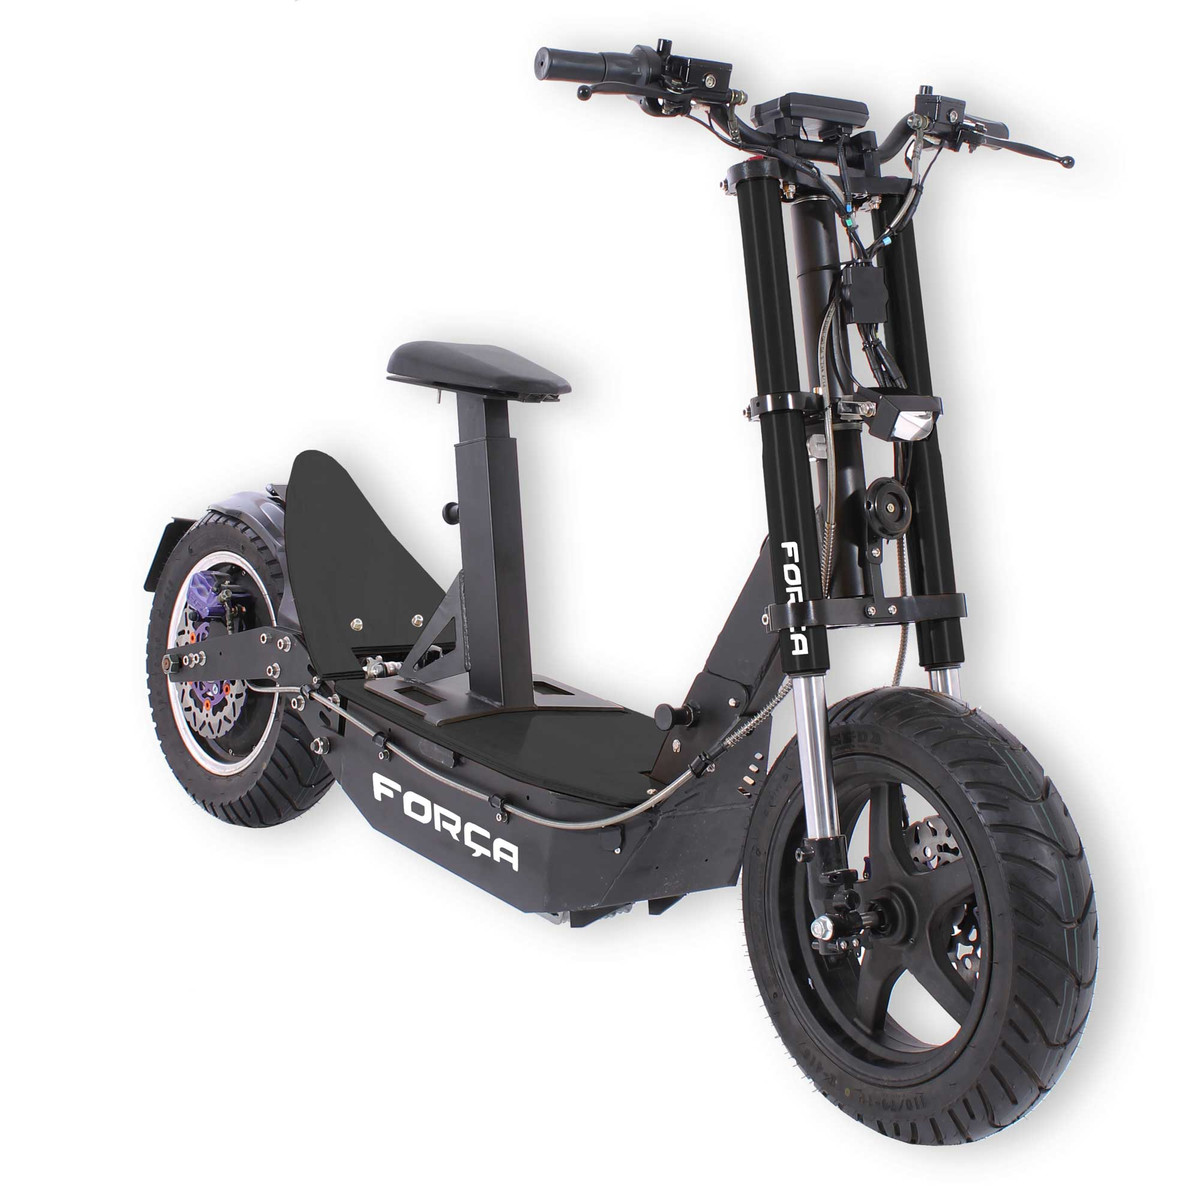 FORCA BOSSMAN-XL 2000W SXX-PRO BIG-WHEEL SCOOTER